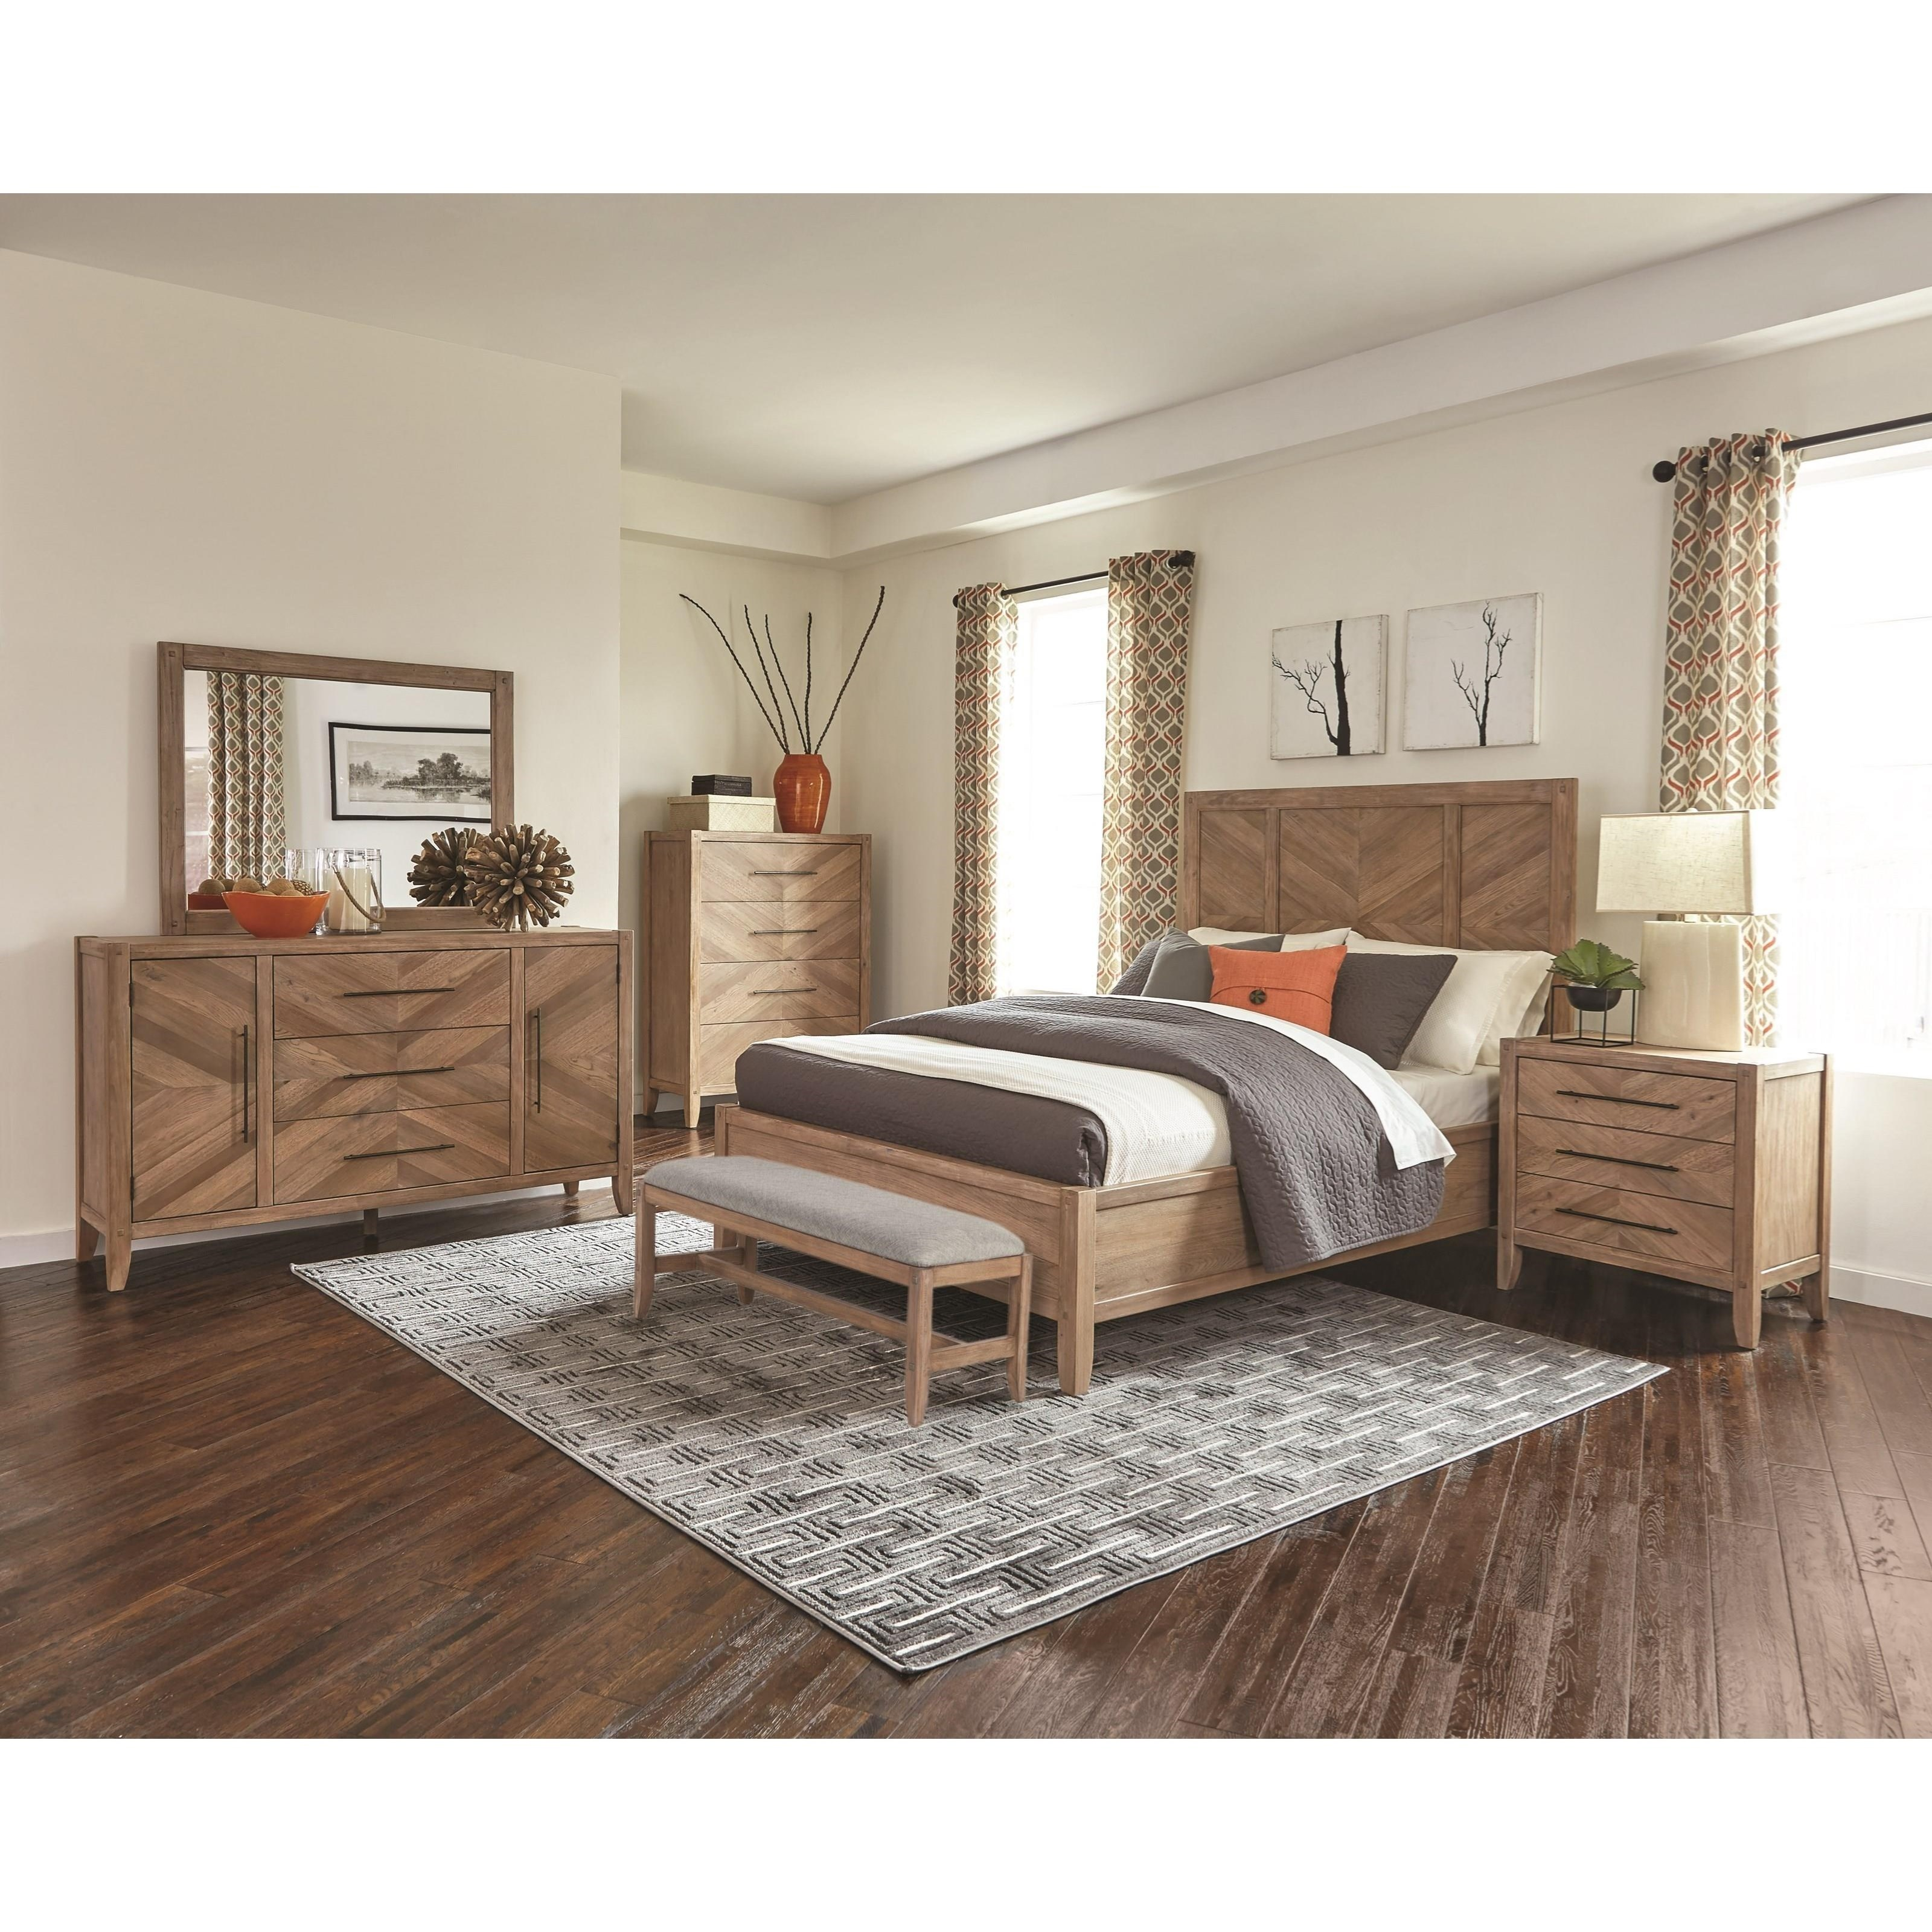 Auburn Queen Panel Bed With Chevron Inlay Design Quality